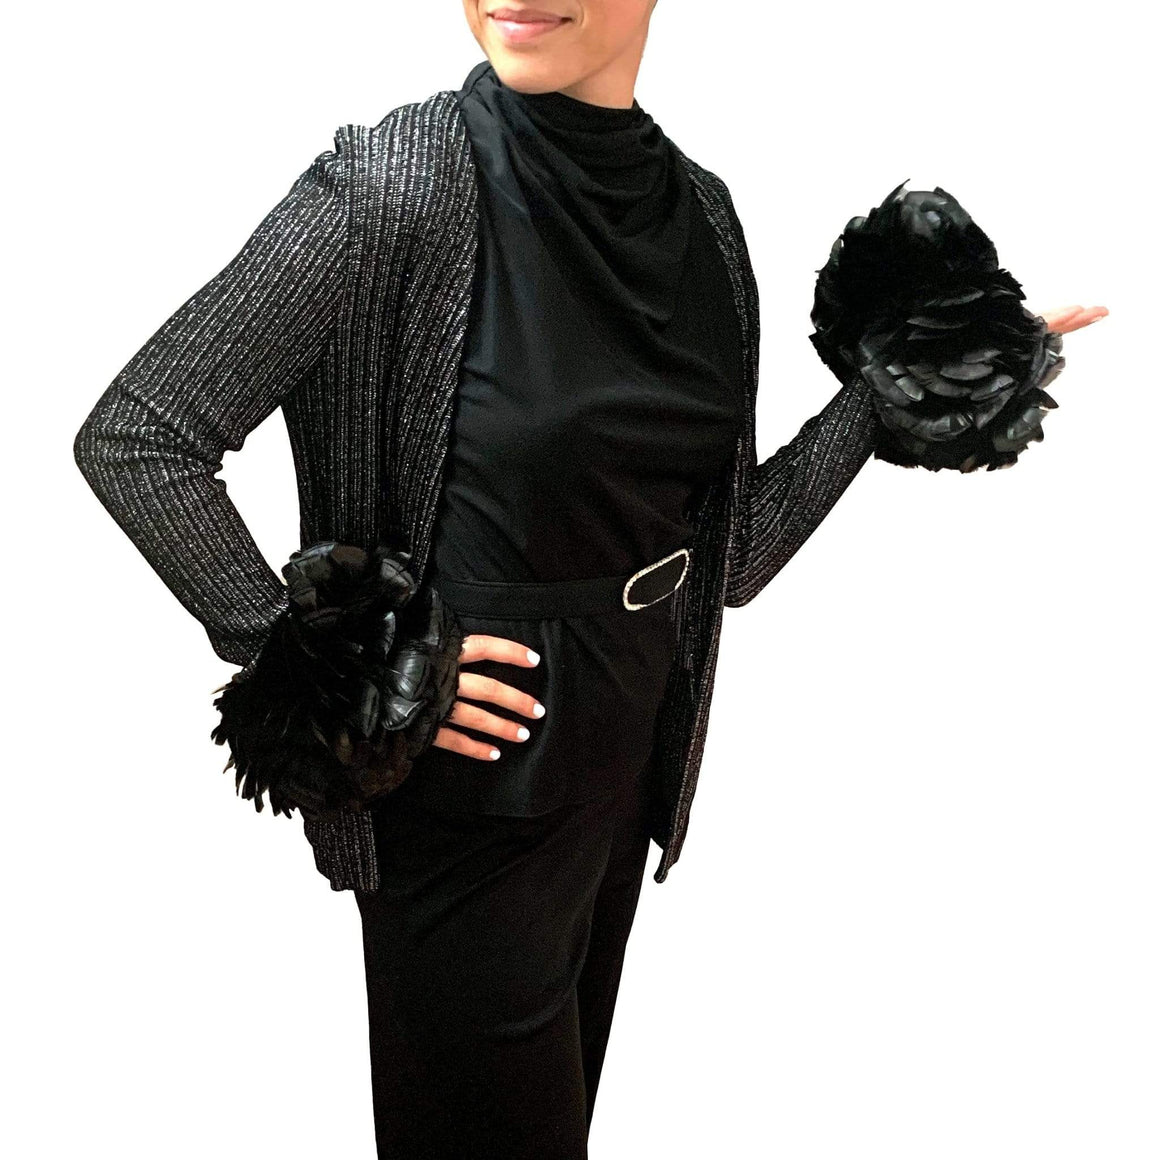 kristina iulo vintage collections Dresses & Suits Vintage 1970s Black Silver Metallic Pantsuit Feather Boa Cuffs Rhinestone Belt